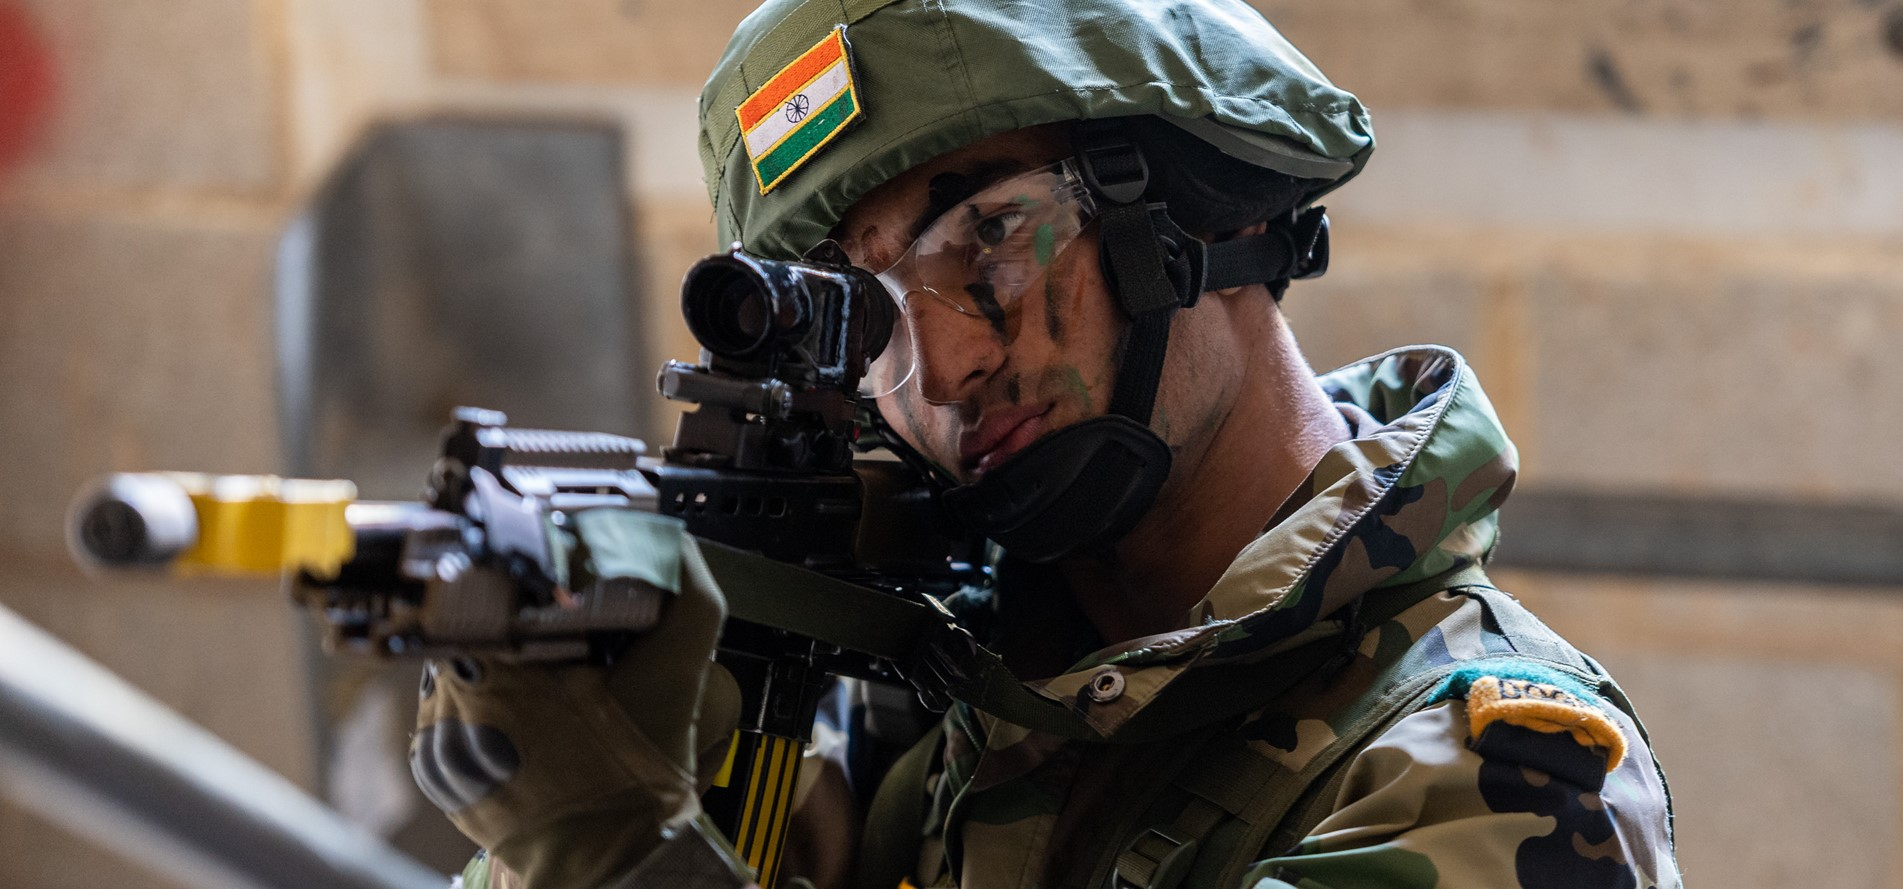 APOSEA-2020-014-1 Rifles and the Indian Army-RK-013.JPG